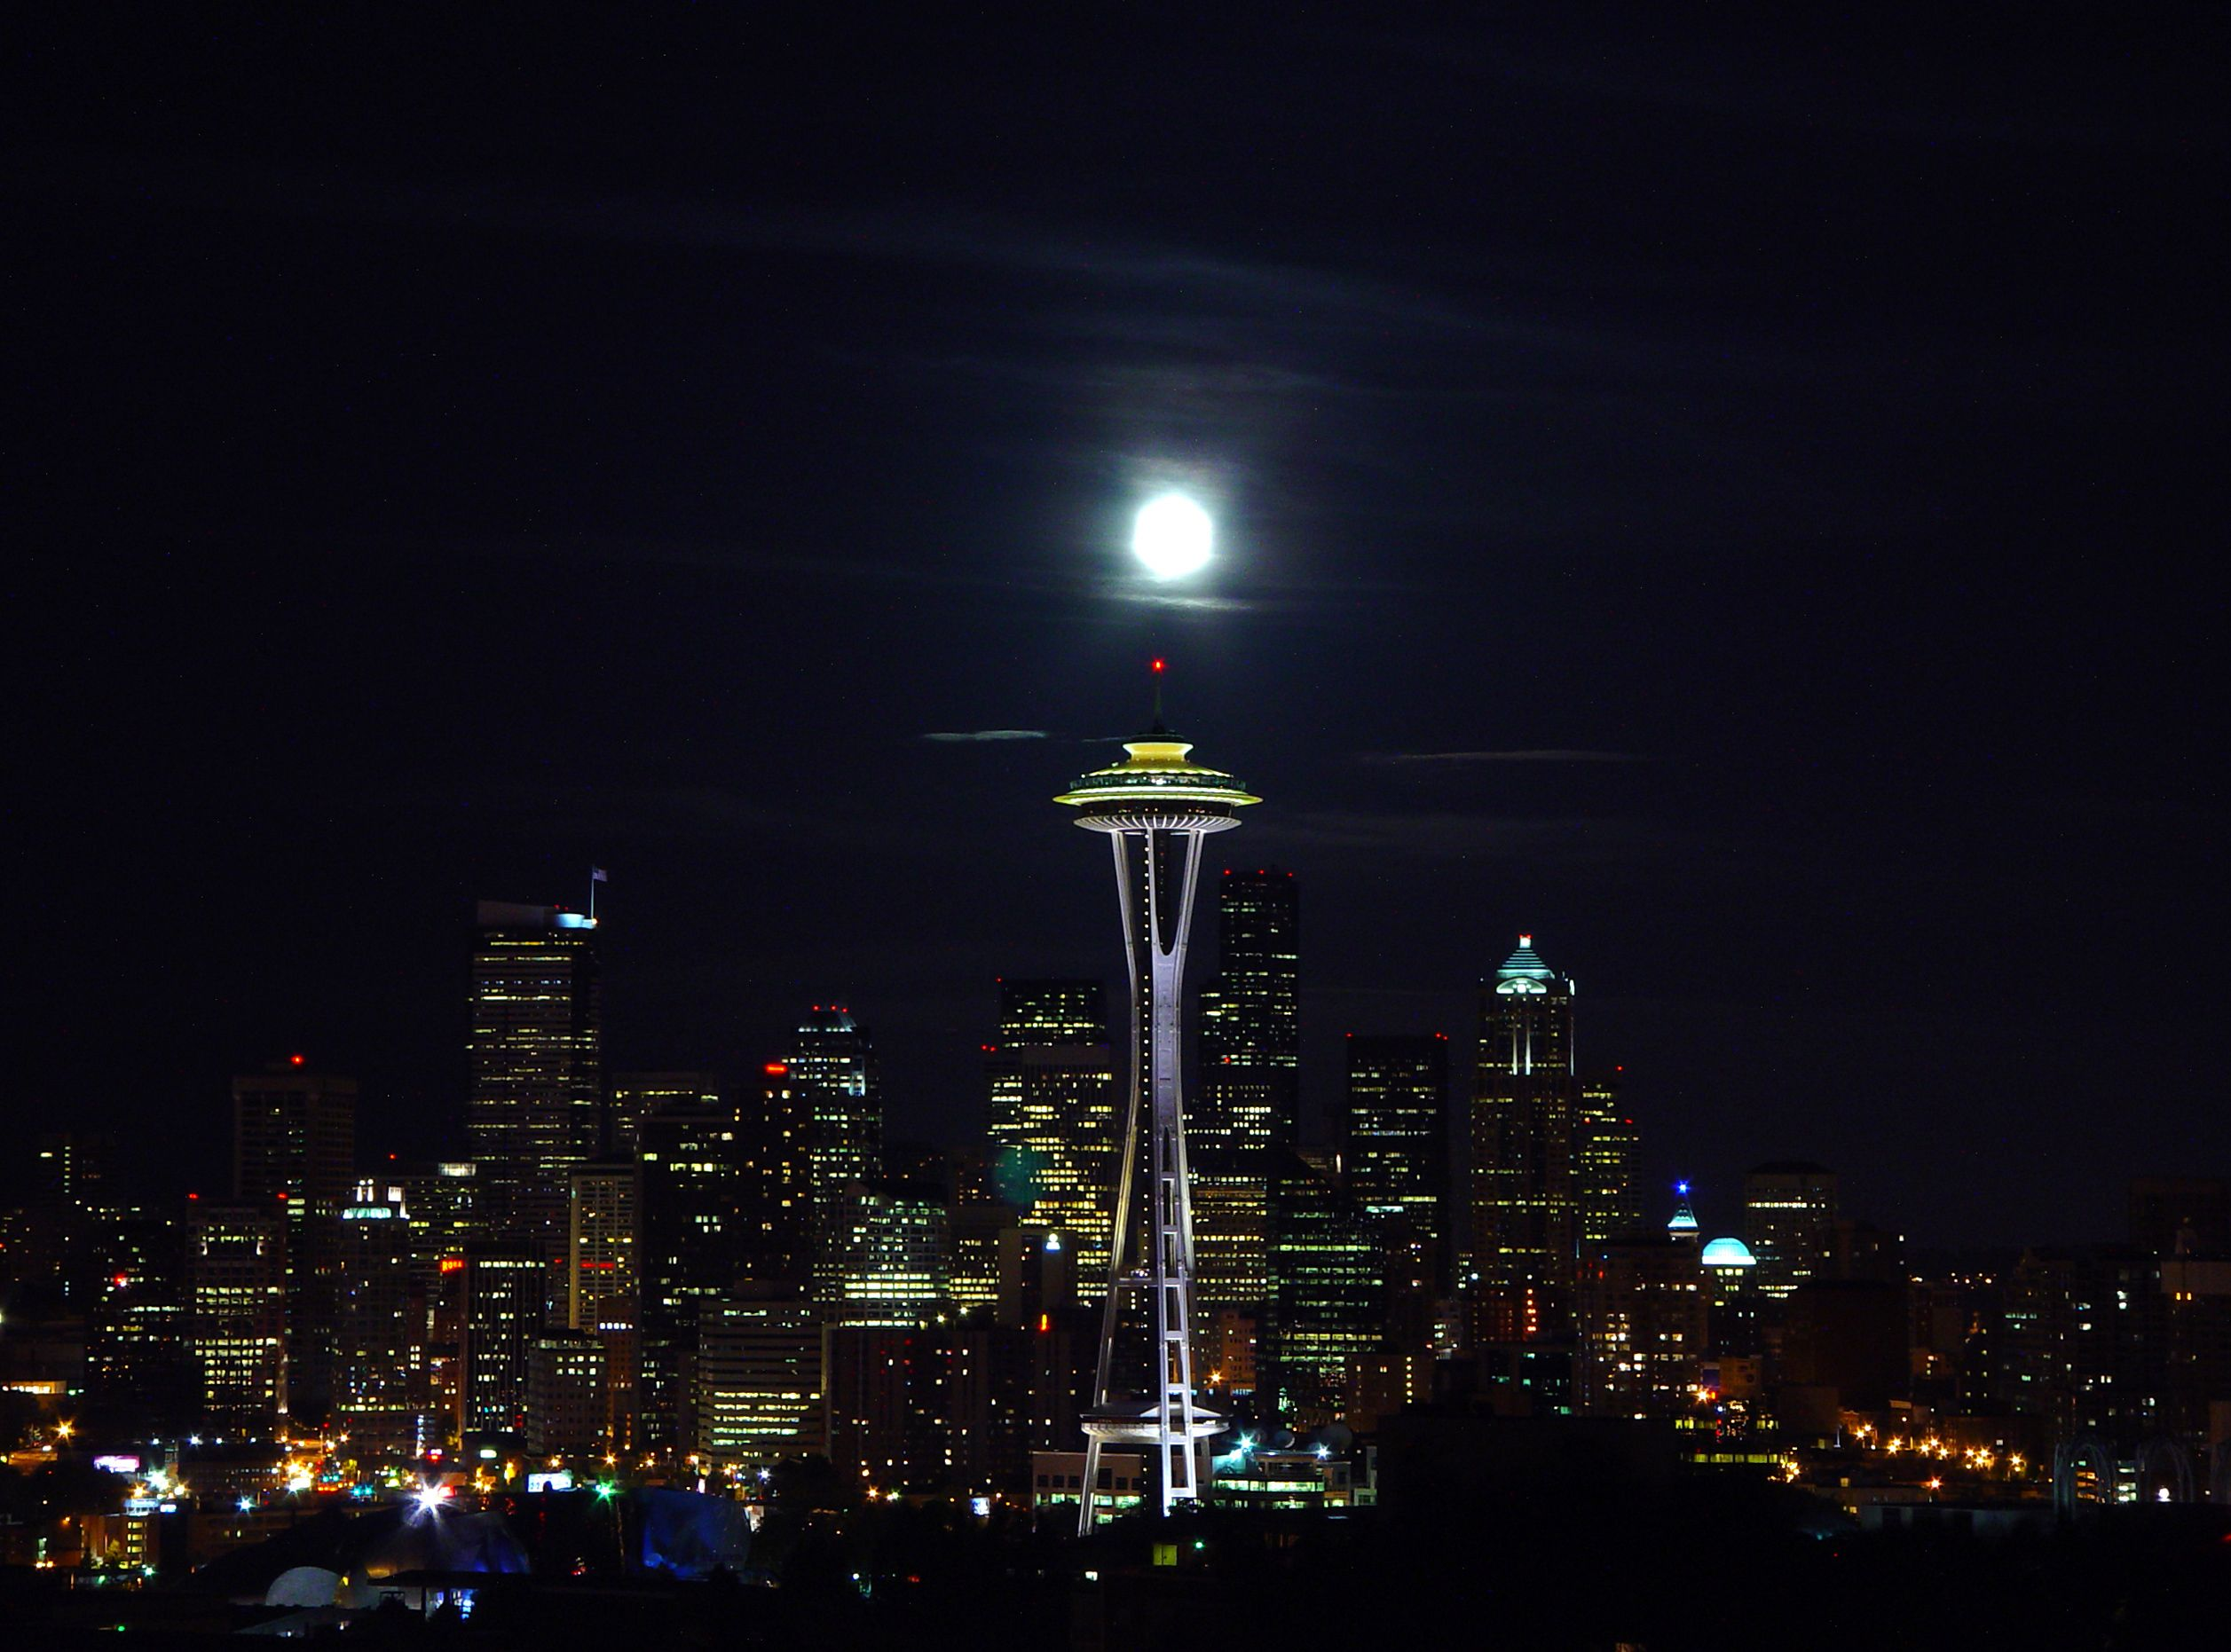 The Seattle Space Needle has a revolving restaurant at the top. Great food and the view? Priceless